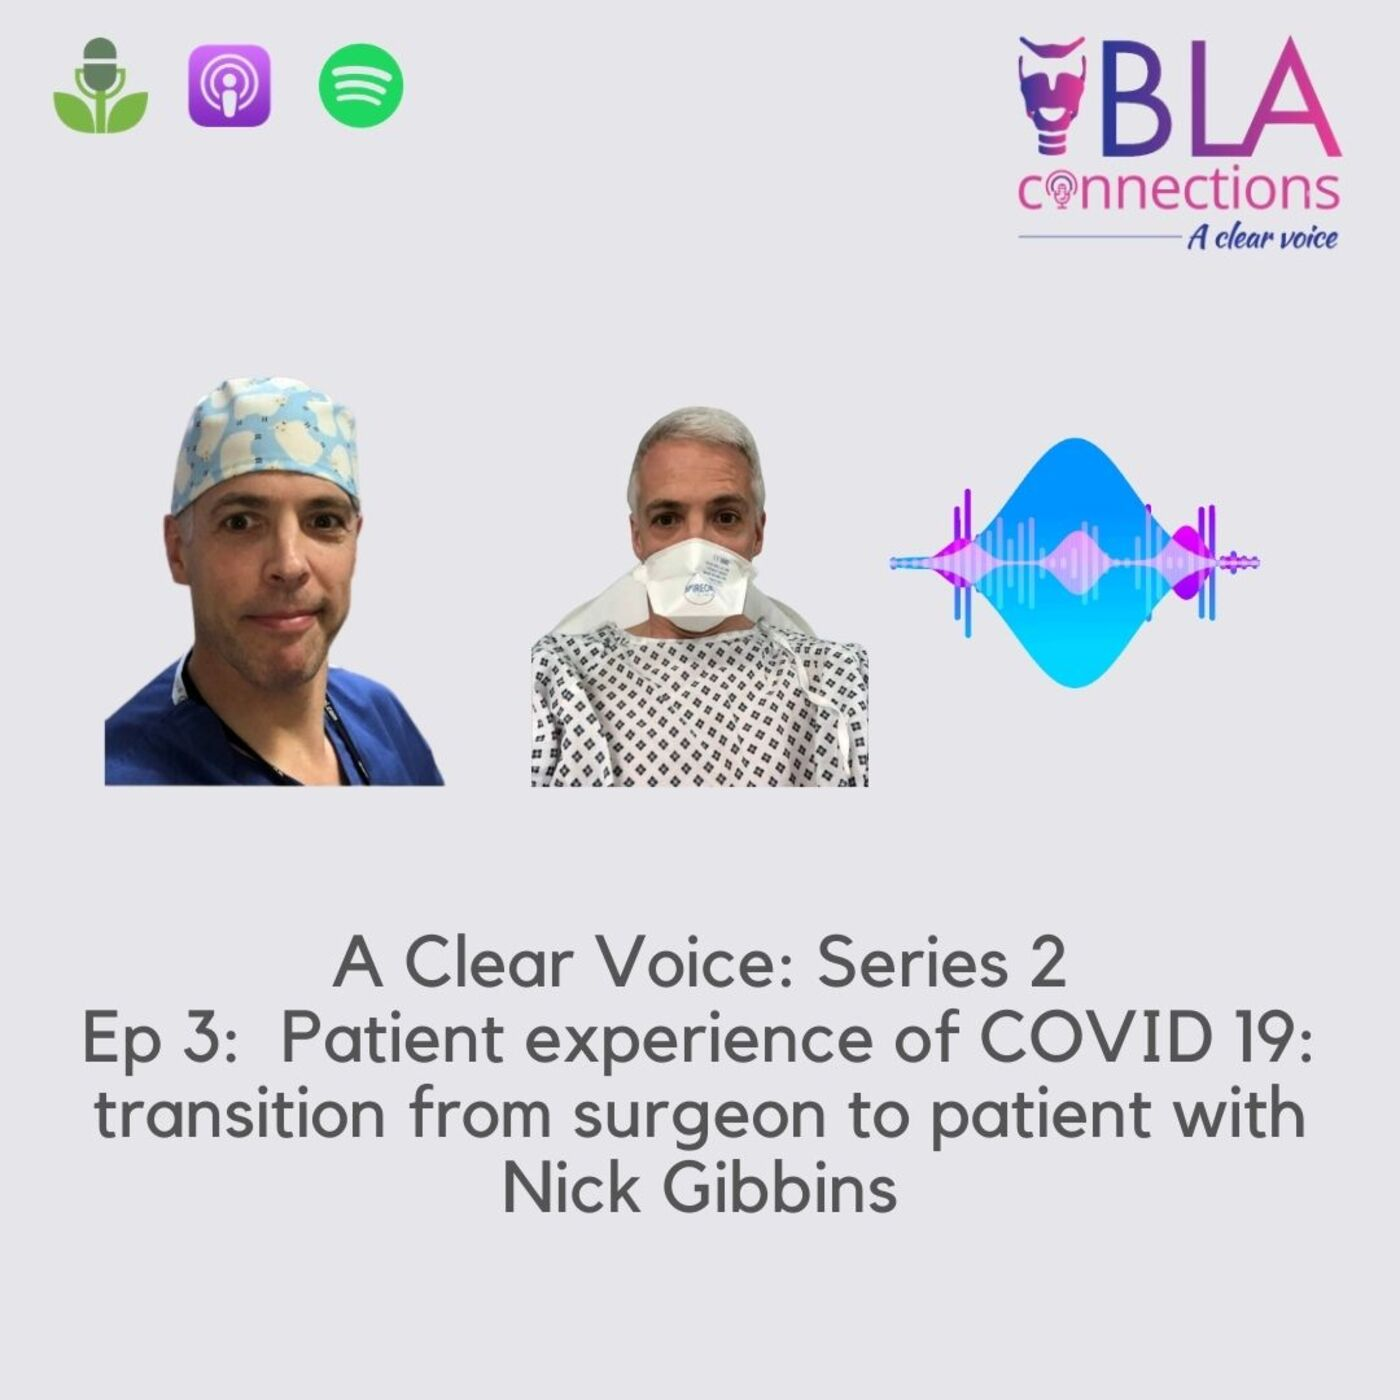 S2 Ep 3: Patient experience COVID-19: Transition from Surgeon to Patient